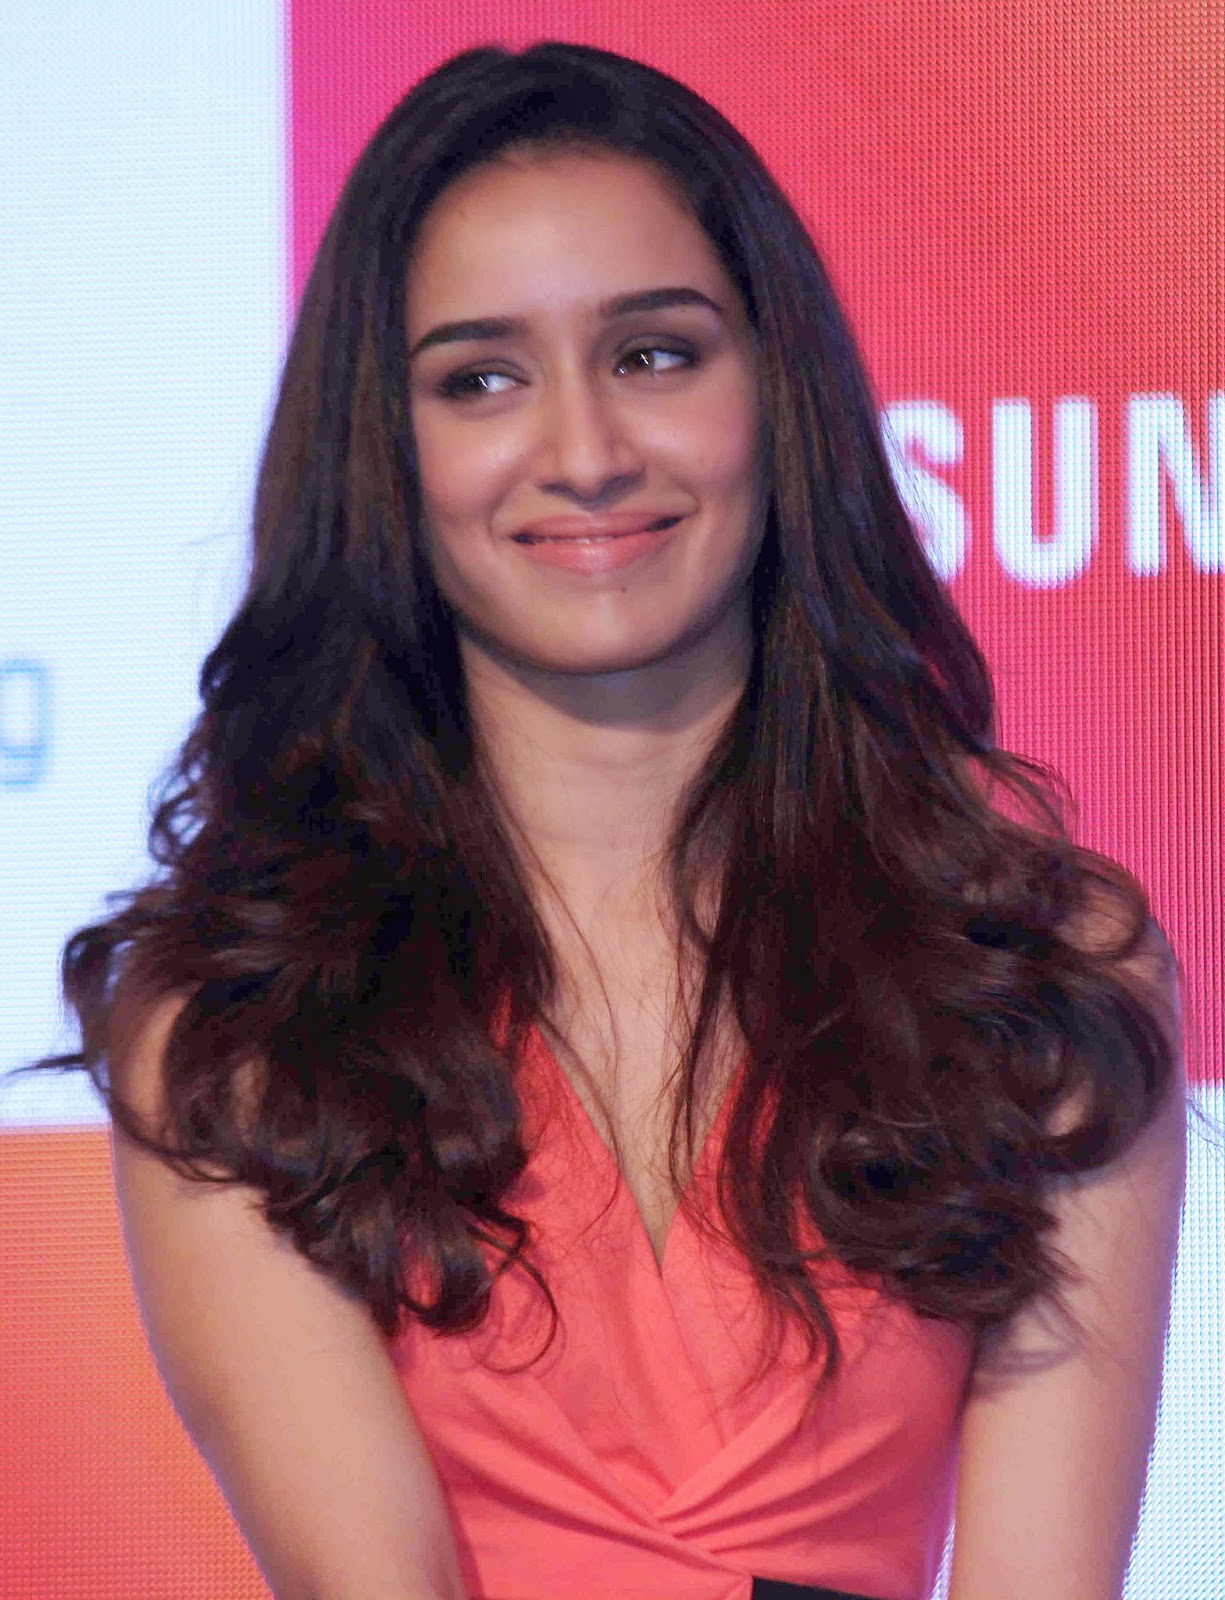 High Quality Bollywood Celebrity Pictures Shraddha Kapoor -2254